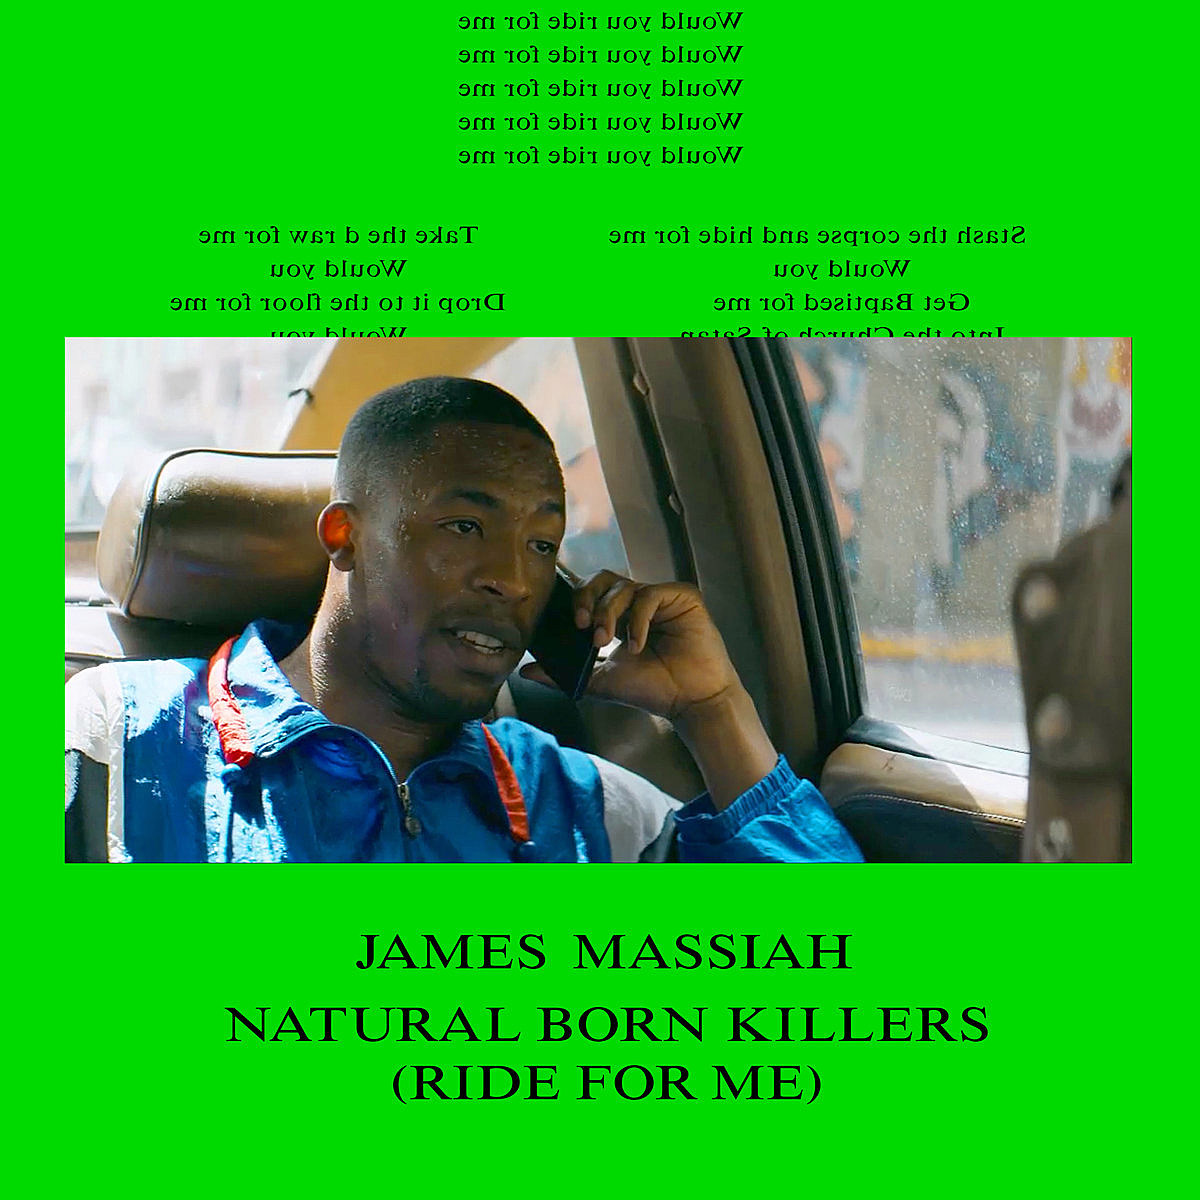 JAMES MASSIAH